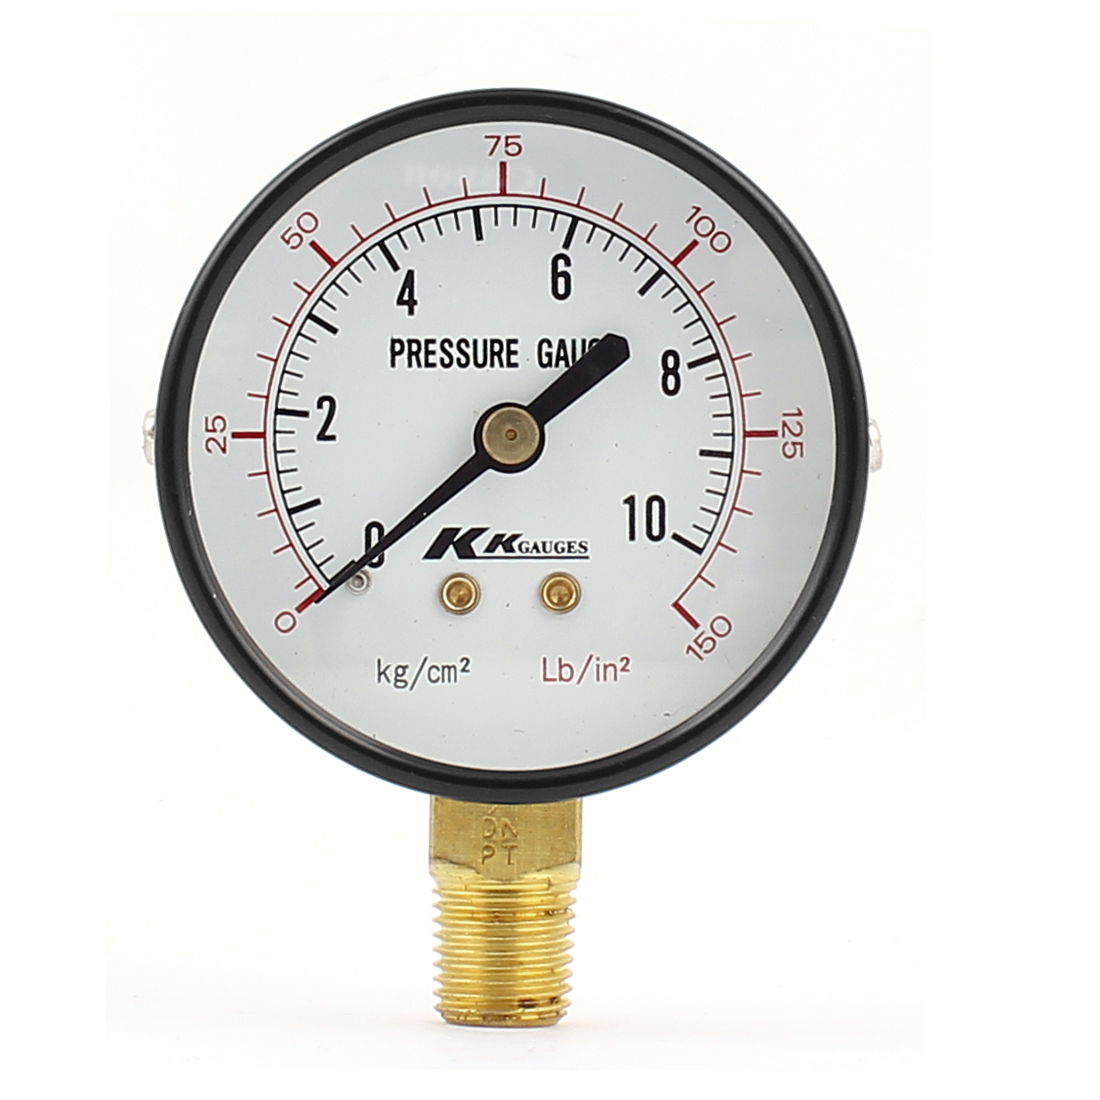 13mm 1/4BSP Male Thread Water Air Compressor Pressure Gauge Meter 0-150Lb/in2 0-10kg/cm2